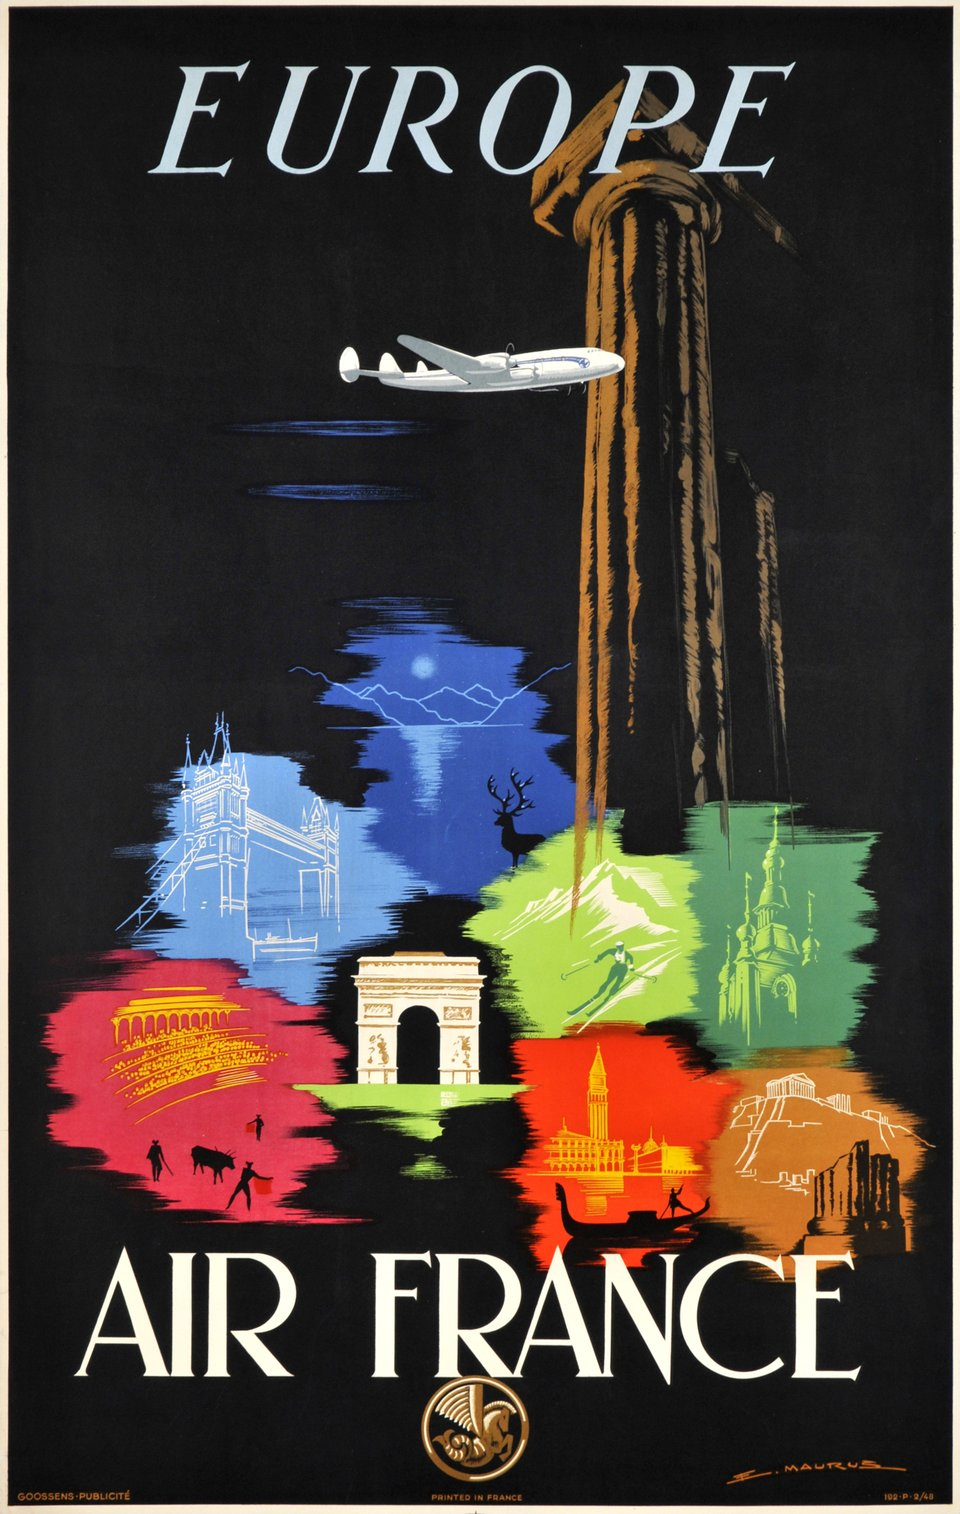 Air France, Europe – Affiche ancienne – Edmond MAURUS – 1948